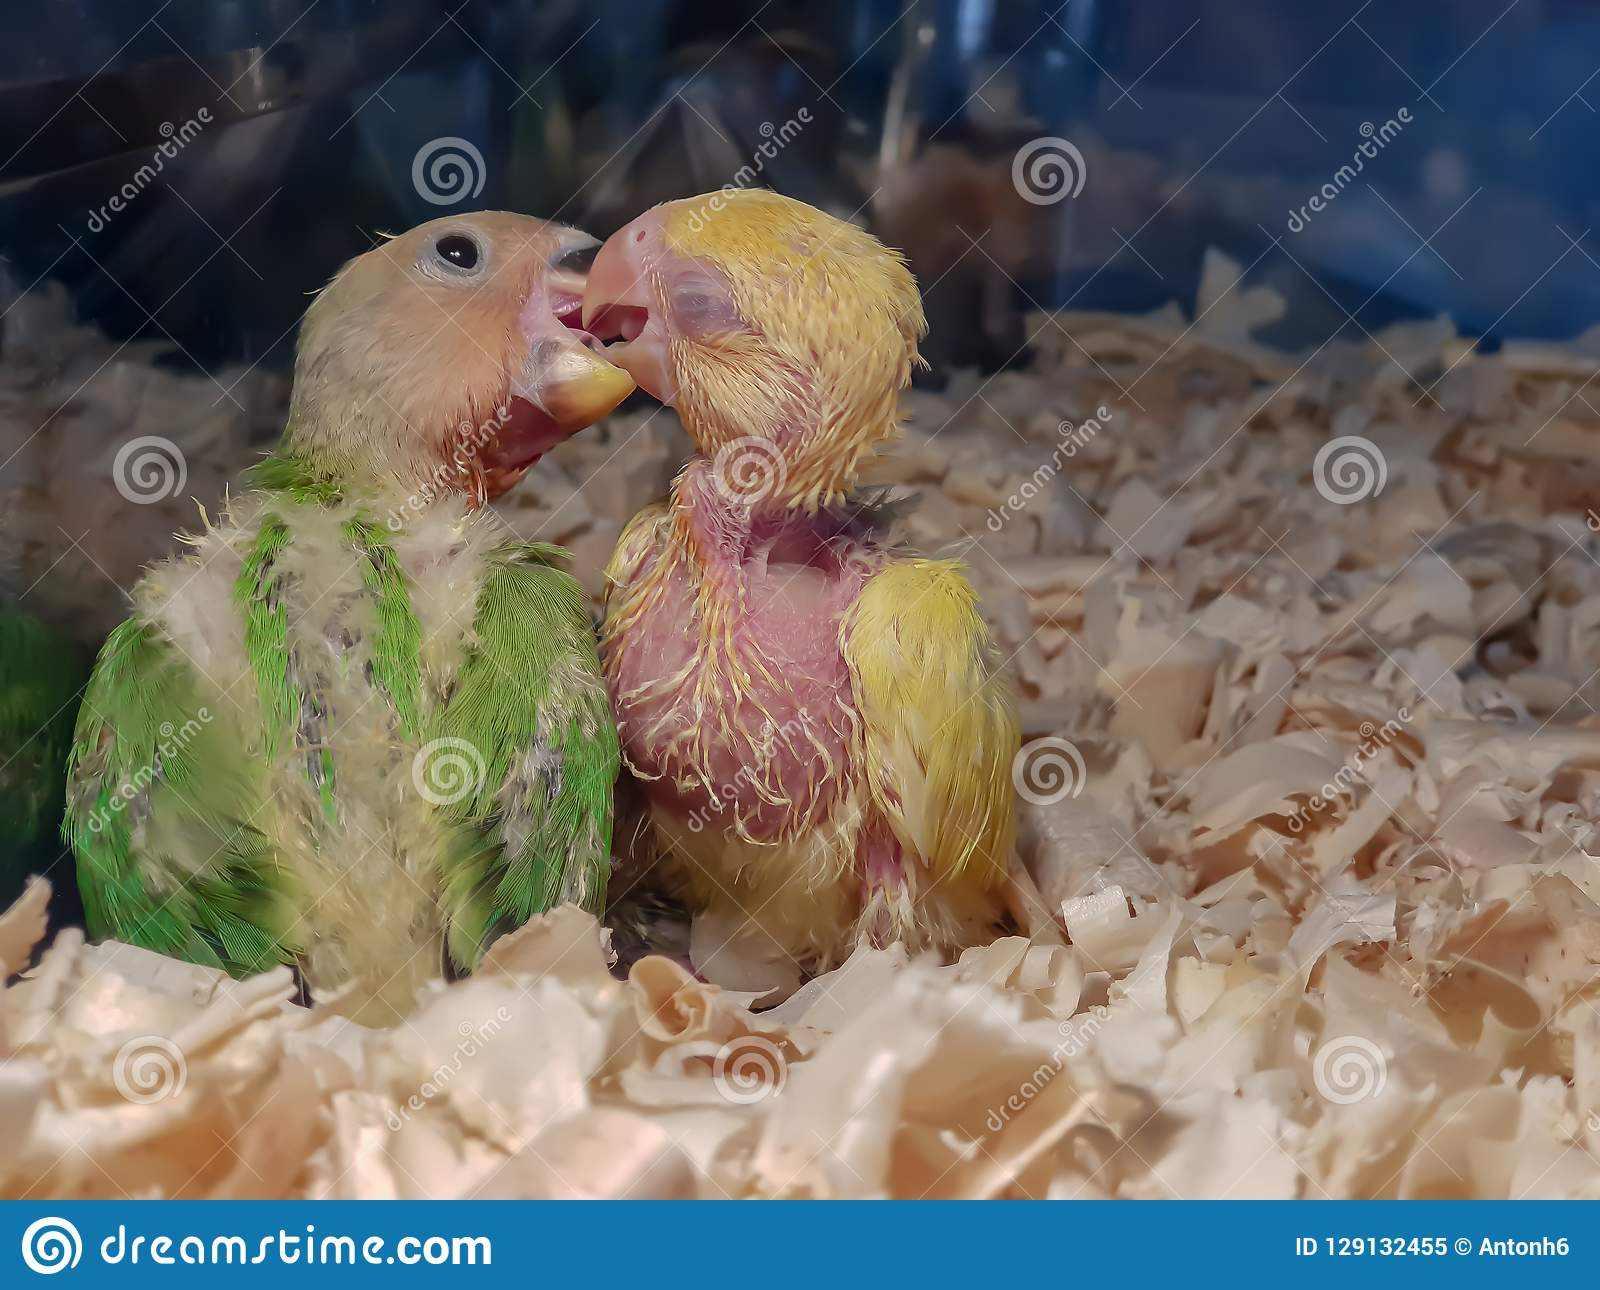 Two baby parrots enjoying each others company.